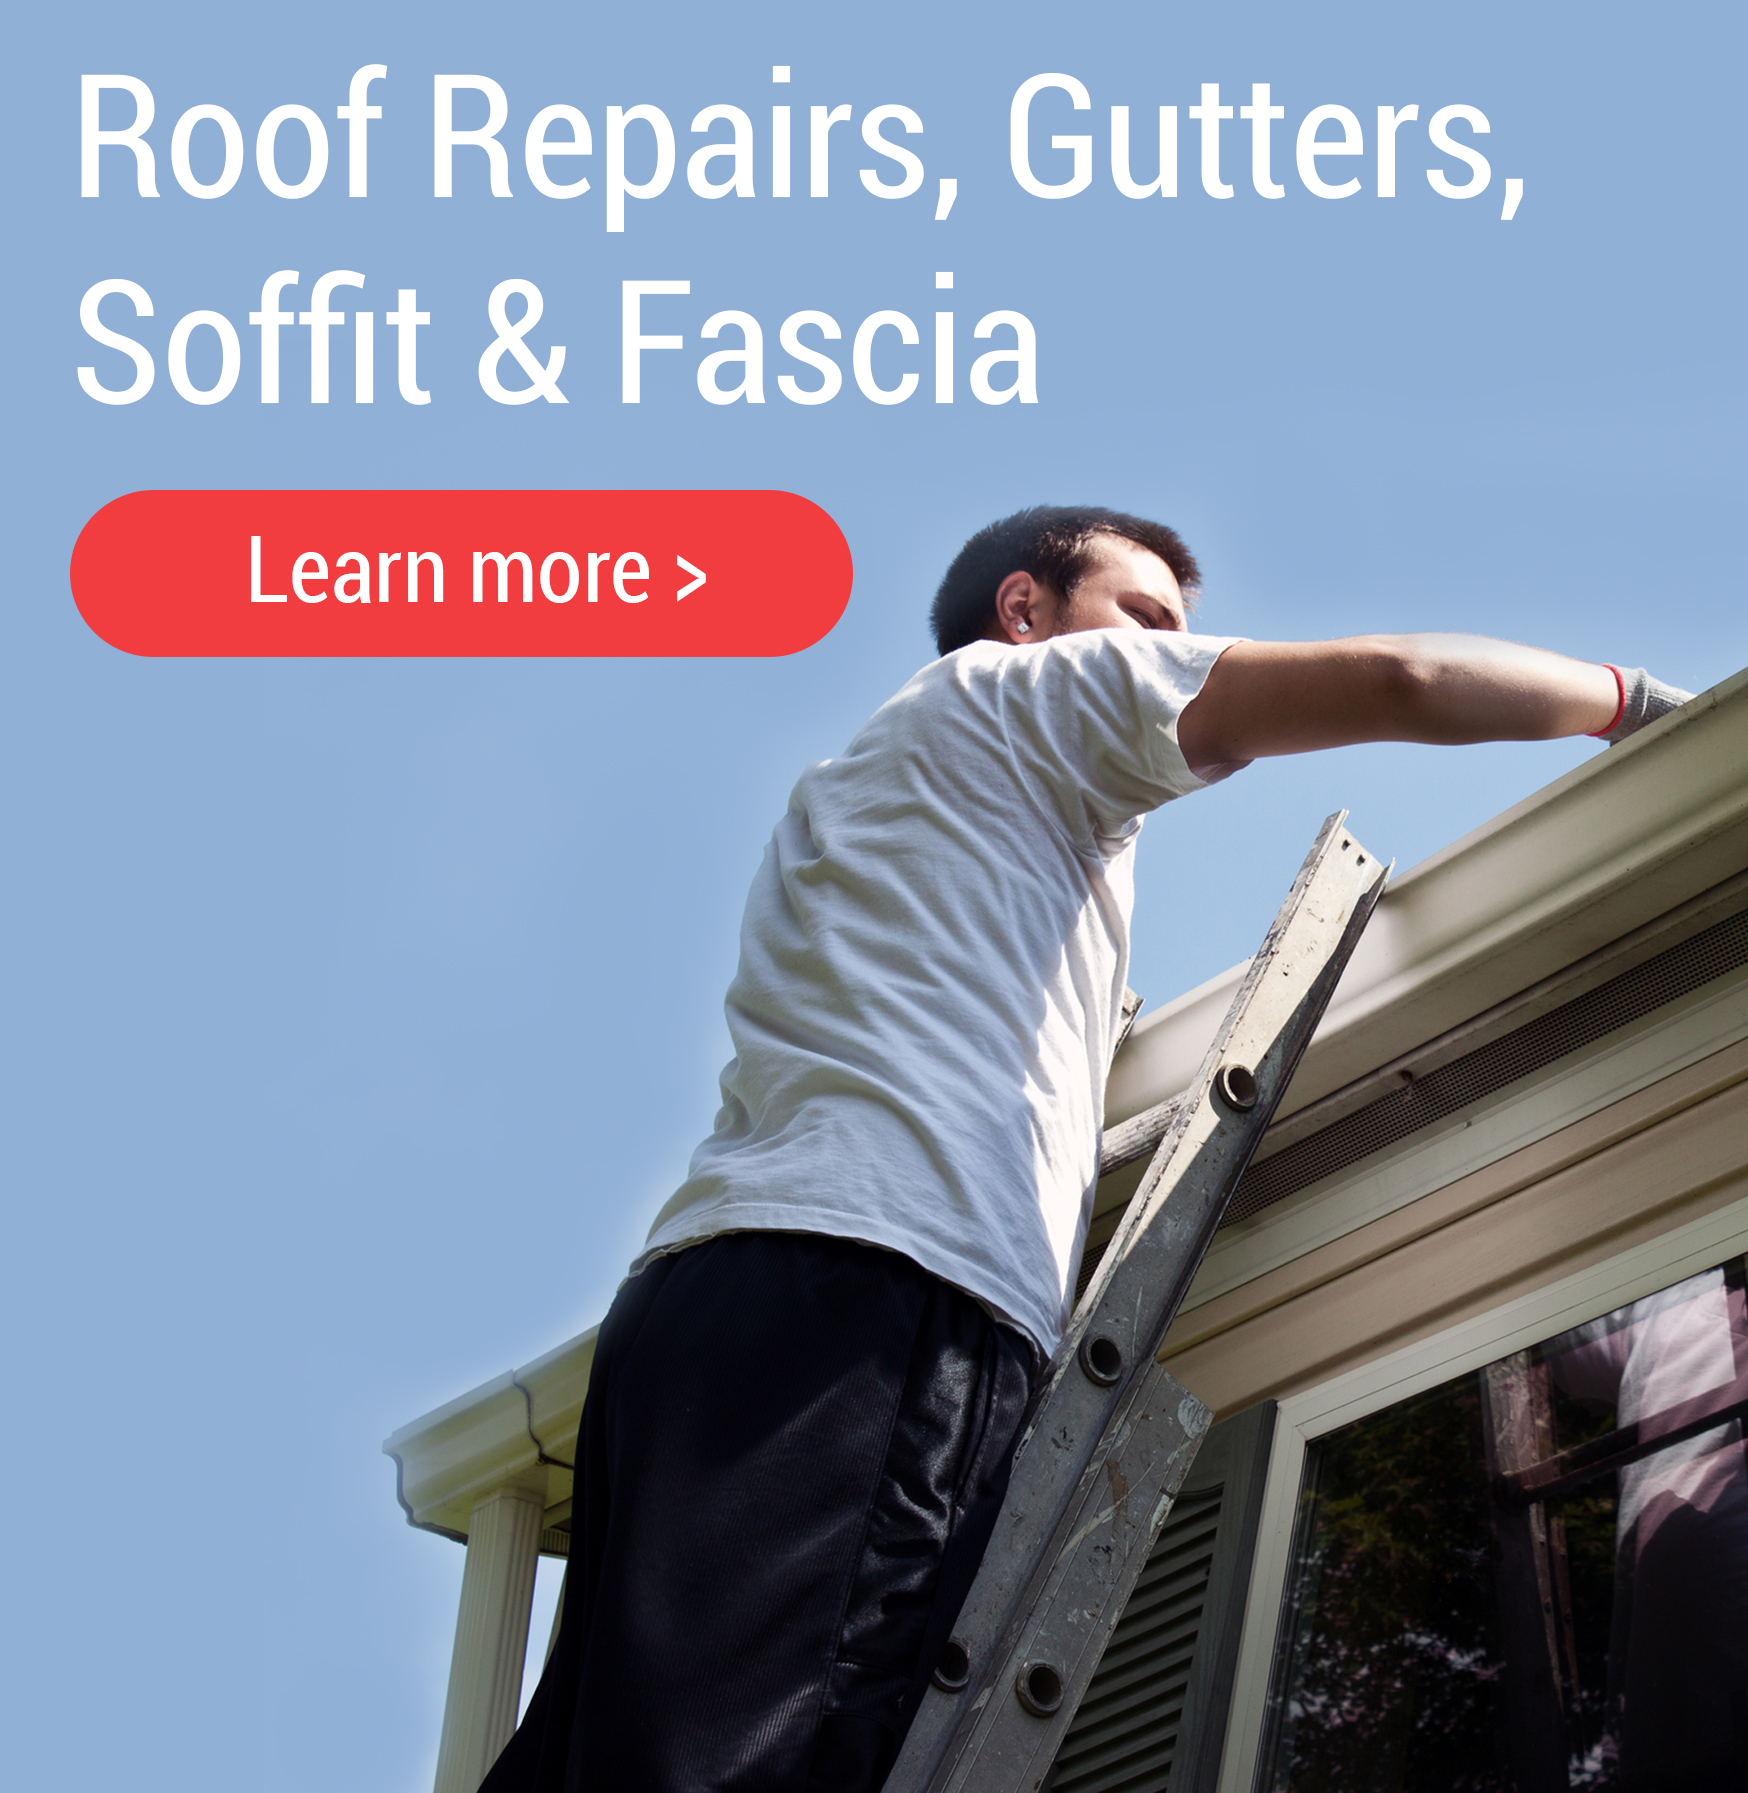 Gutters and soffit services